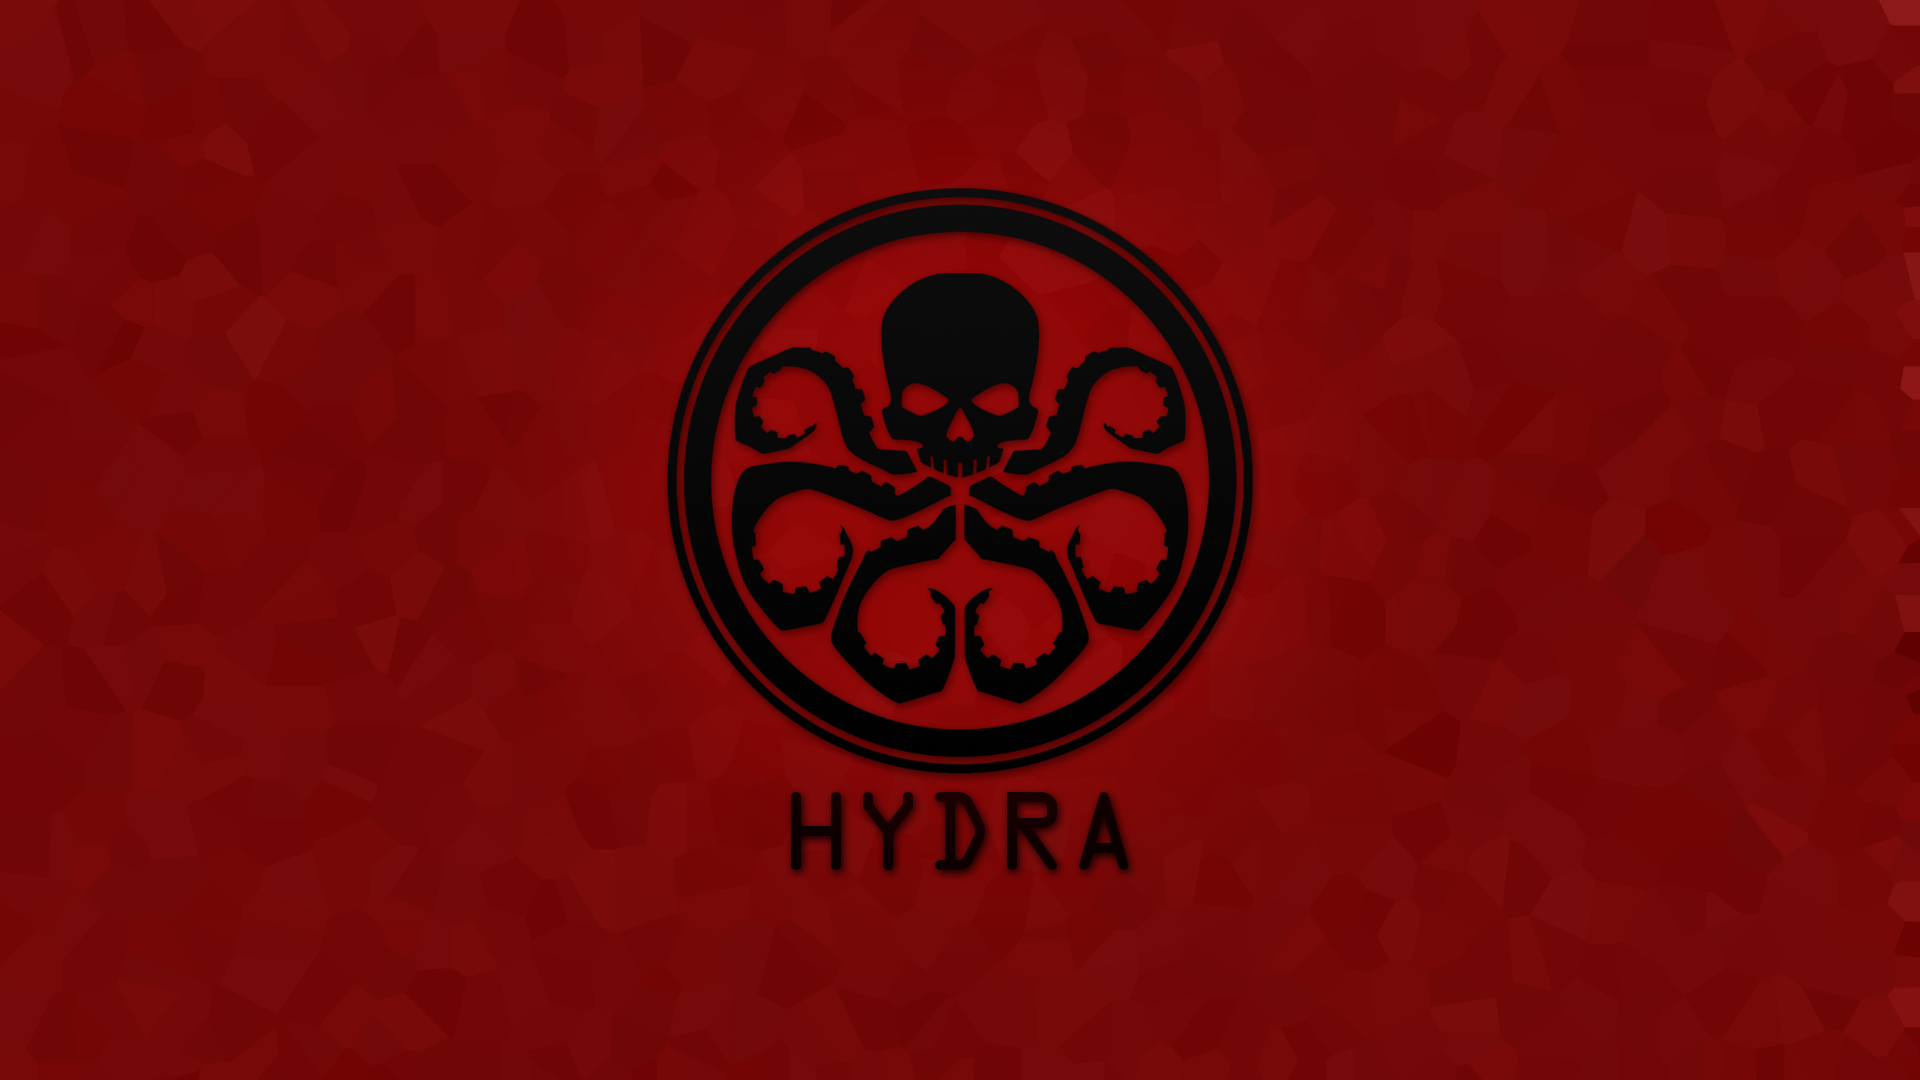 Hydra Wallpapers in High Quality | 1920x1080 px, by Jani Haithcock